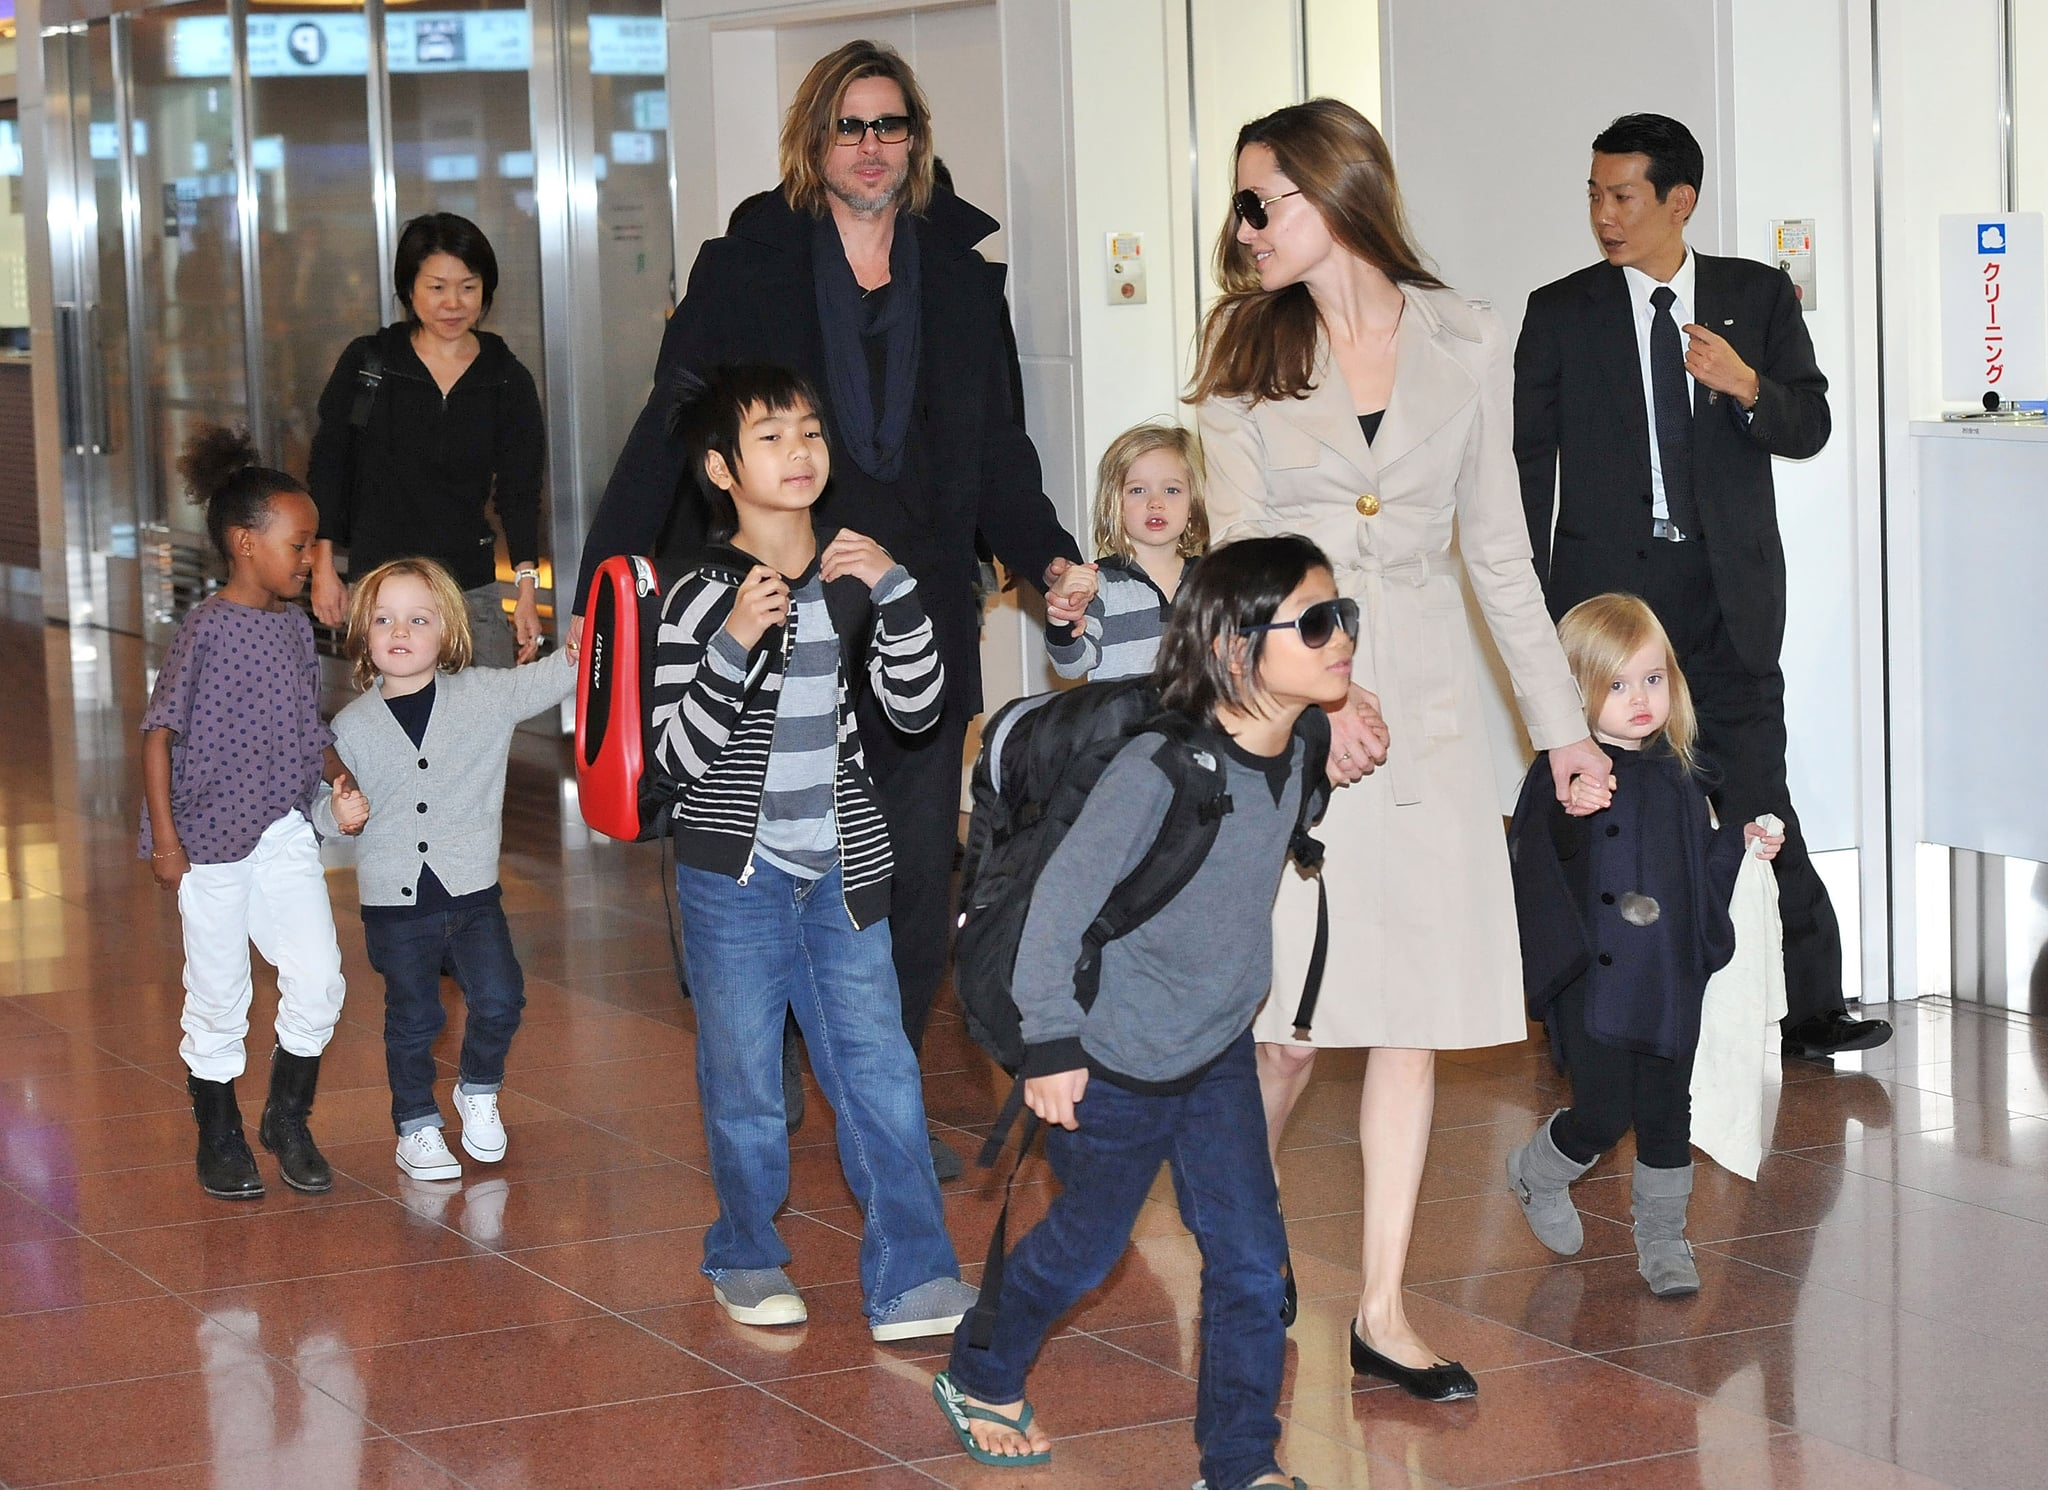 The Jolie-Pitts arrived in Japan together.